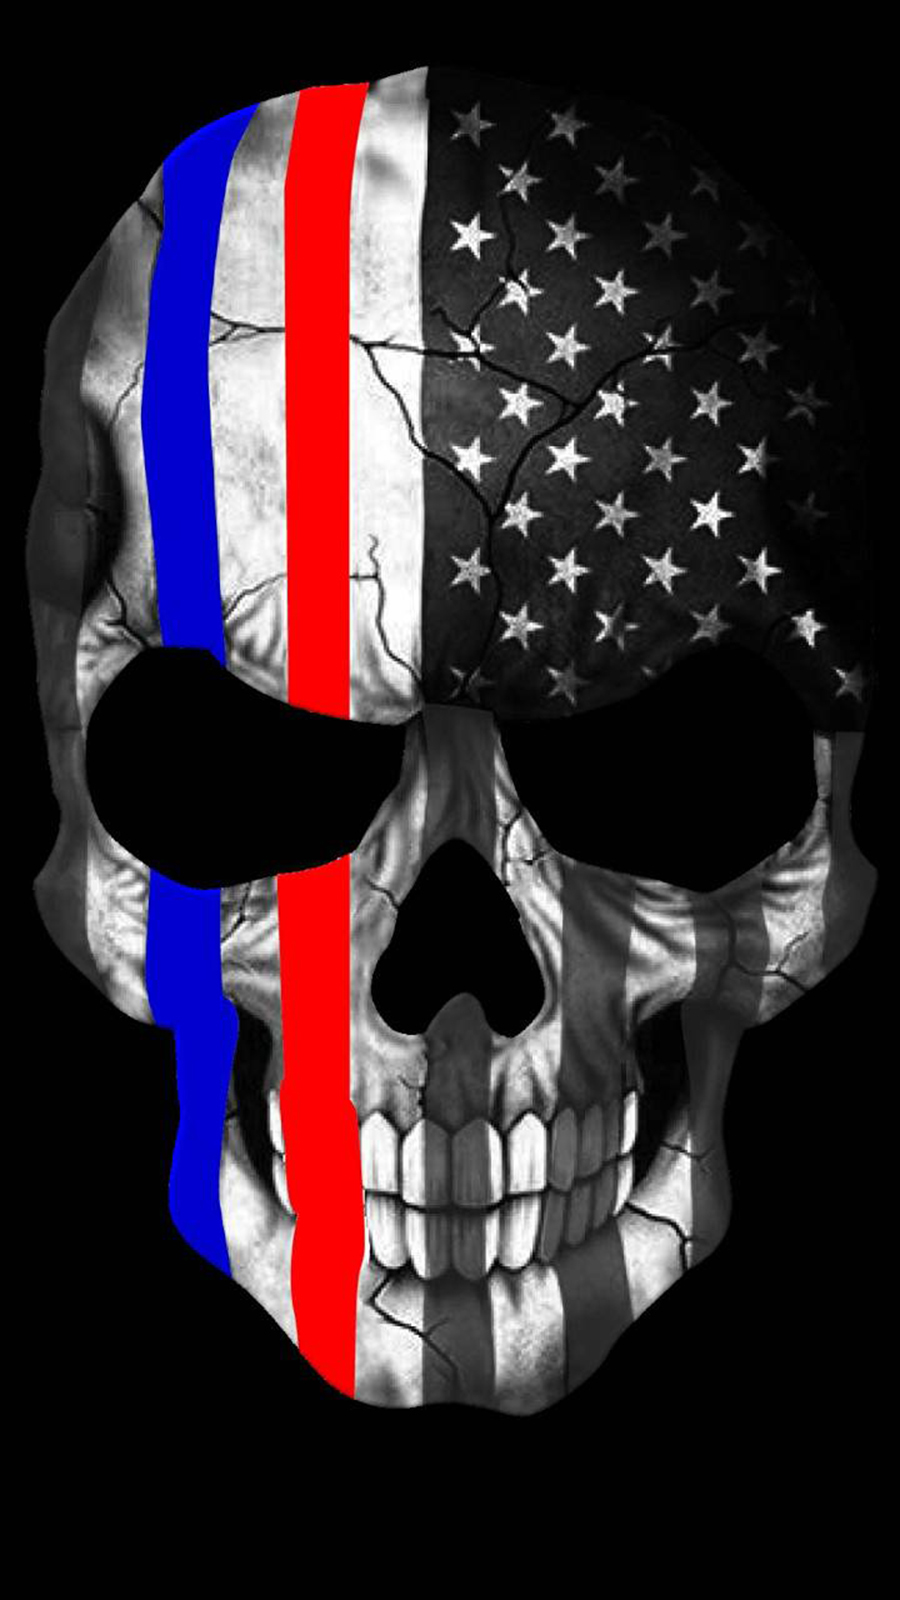 Red & Blue Punisher Wallpapers Free Download For Your Device